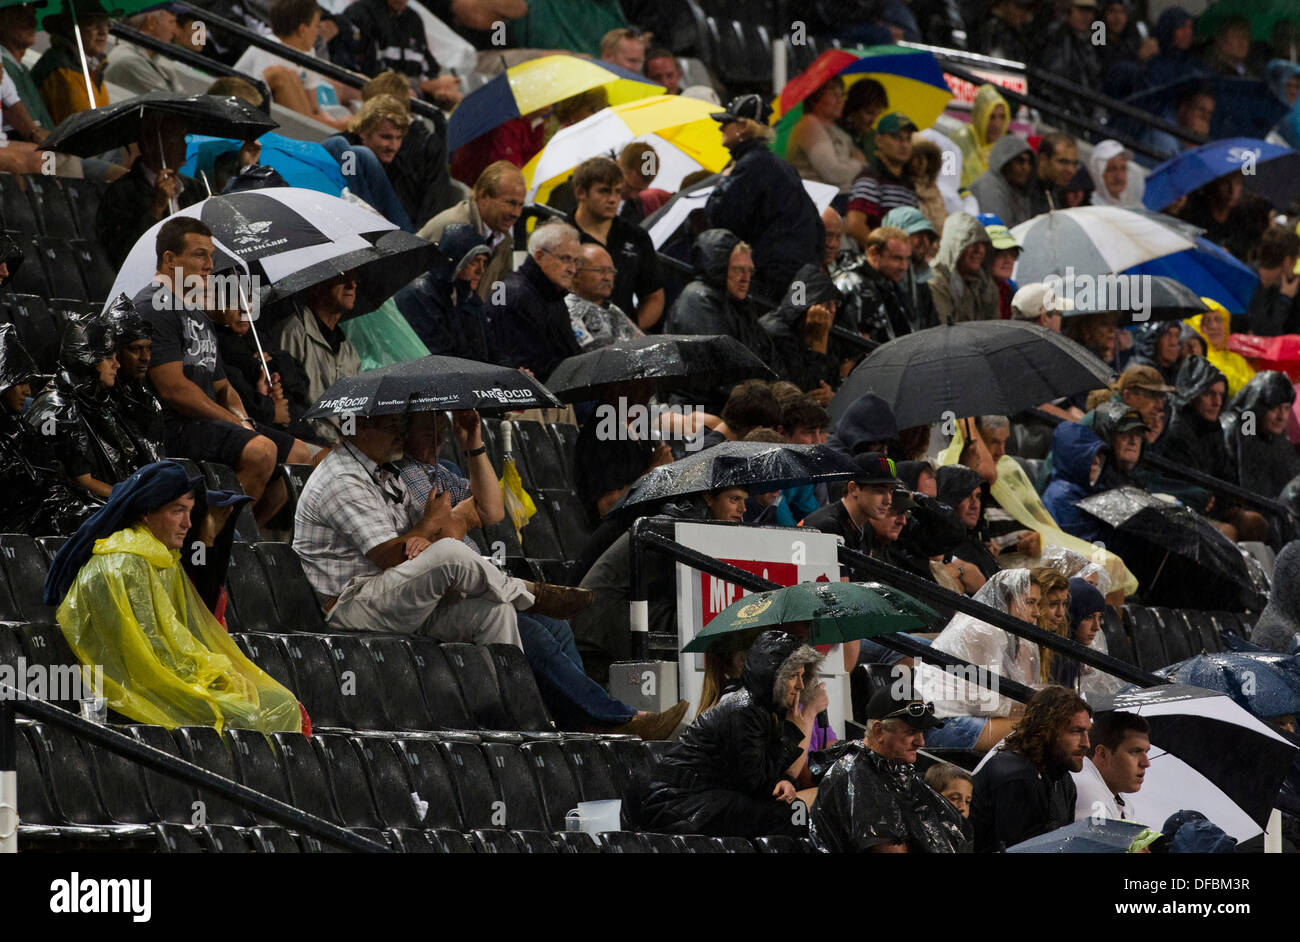 Spectators watch Sharks play against Reds during a Super 15 rugby match Kings Park Stadium in Durban 17 March 2012 © Rogan Ward - Stock Image